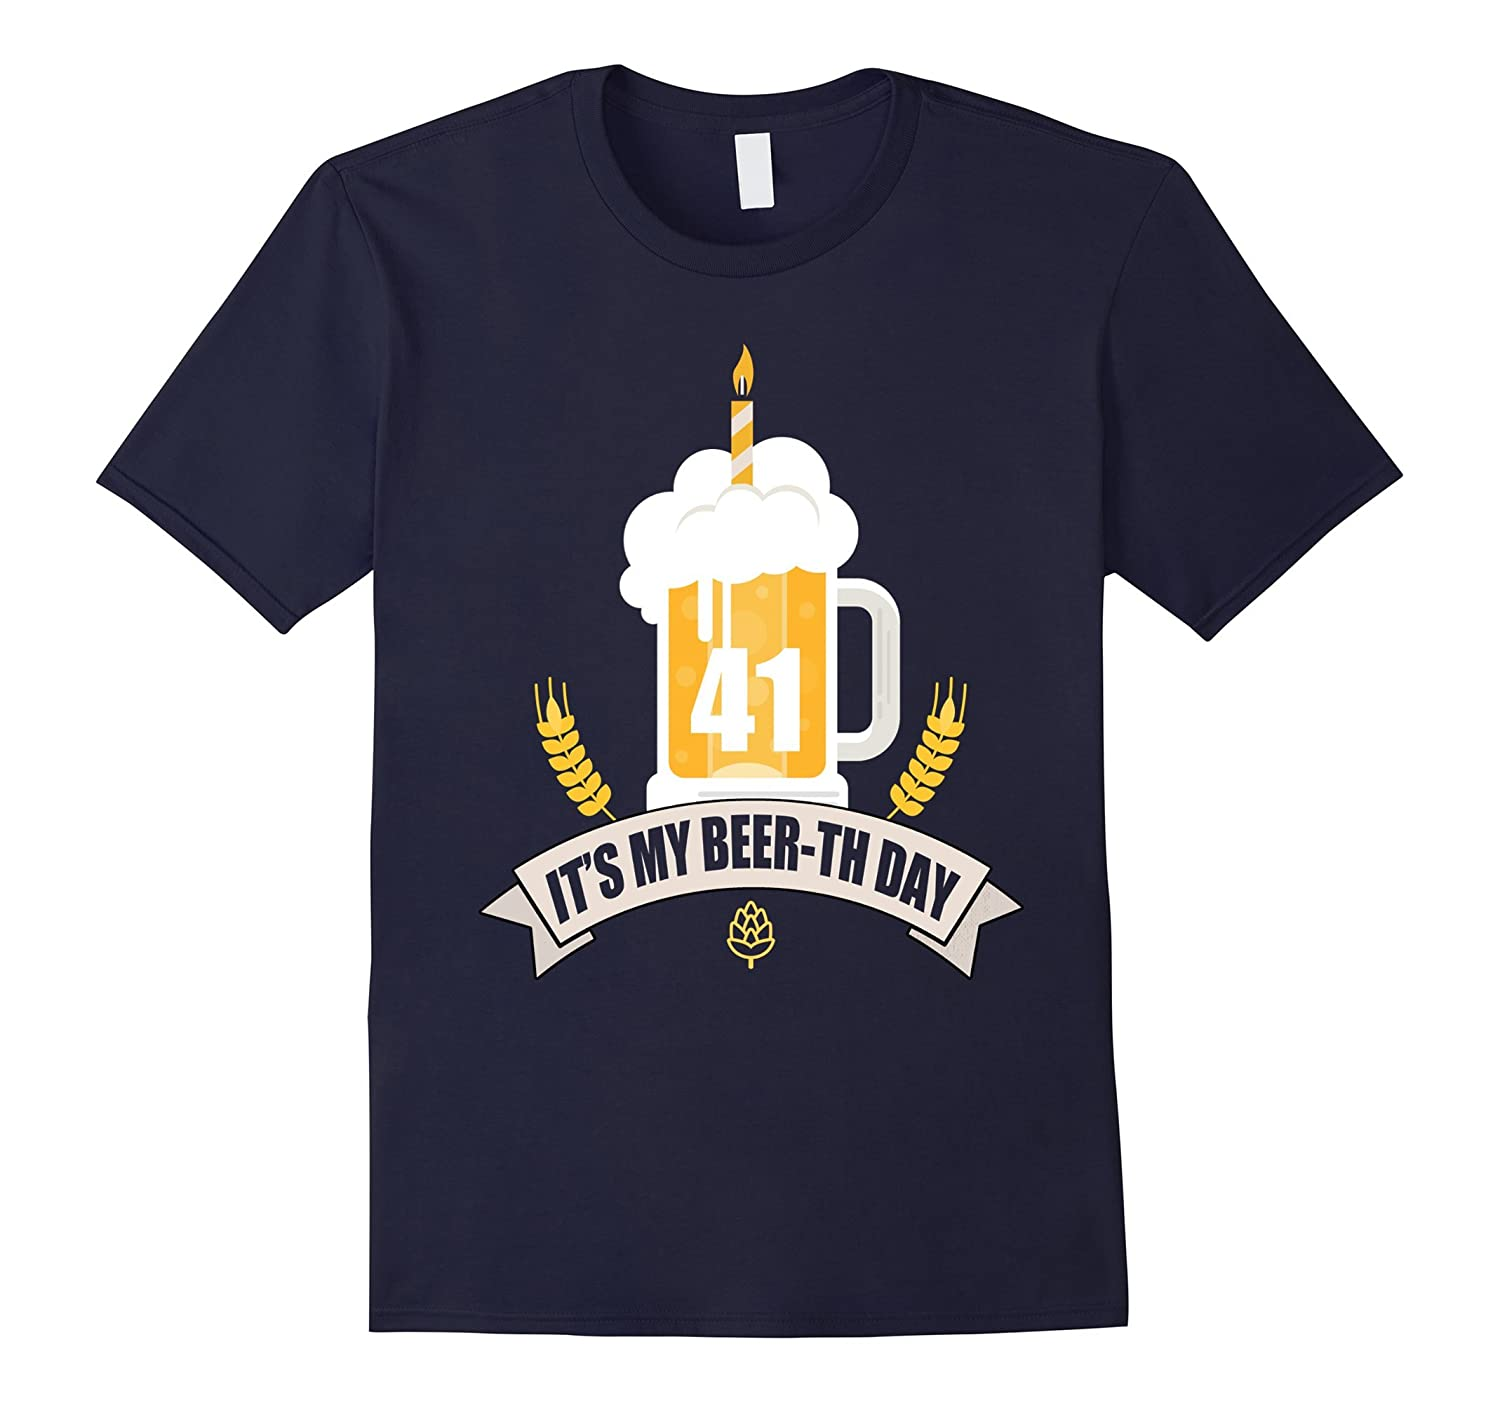 41st Birthday T-Shirt Its my Beer-th Day Funny Beer Shirt-TH